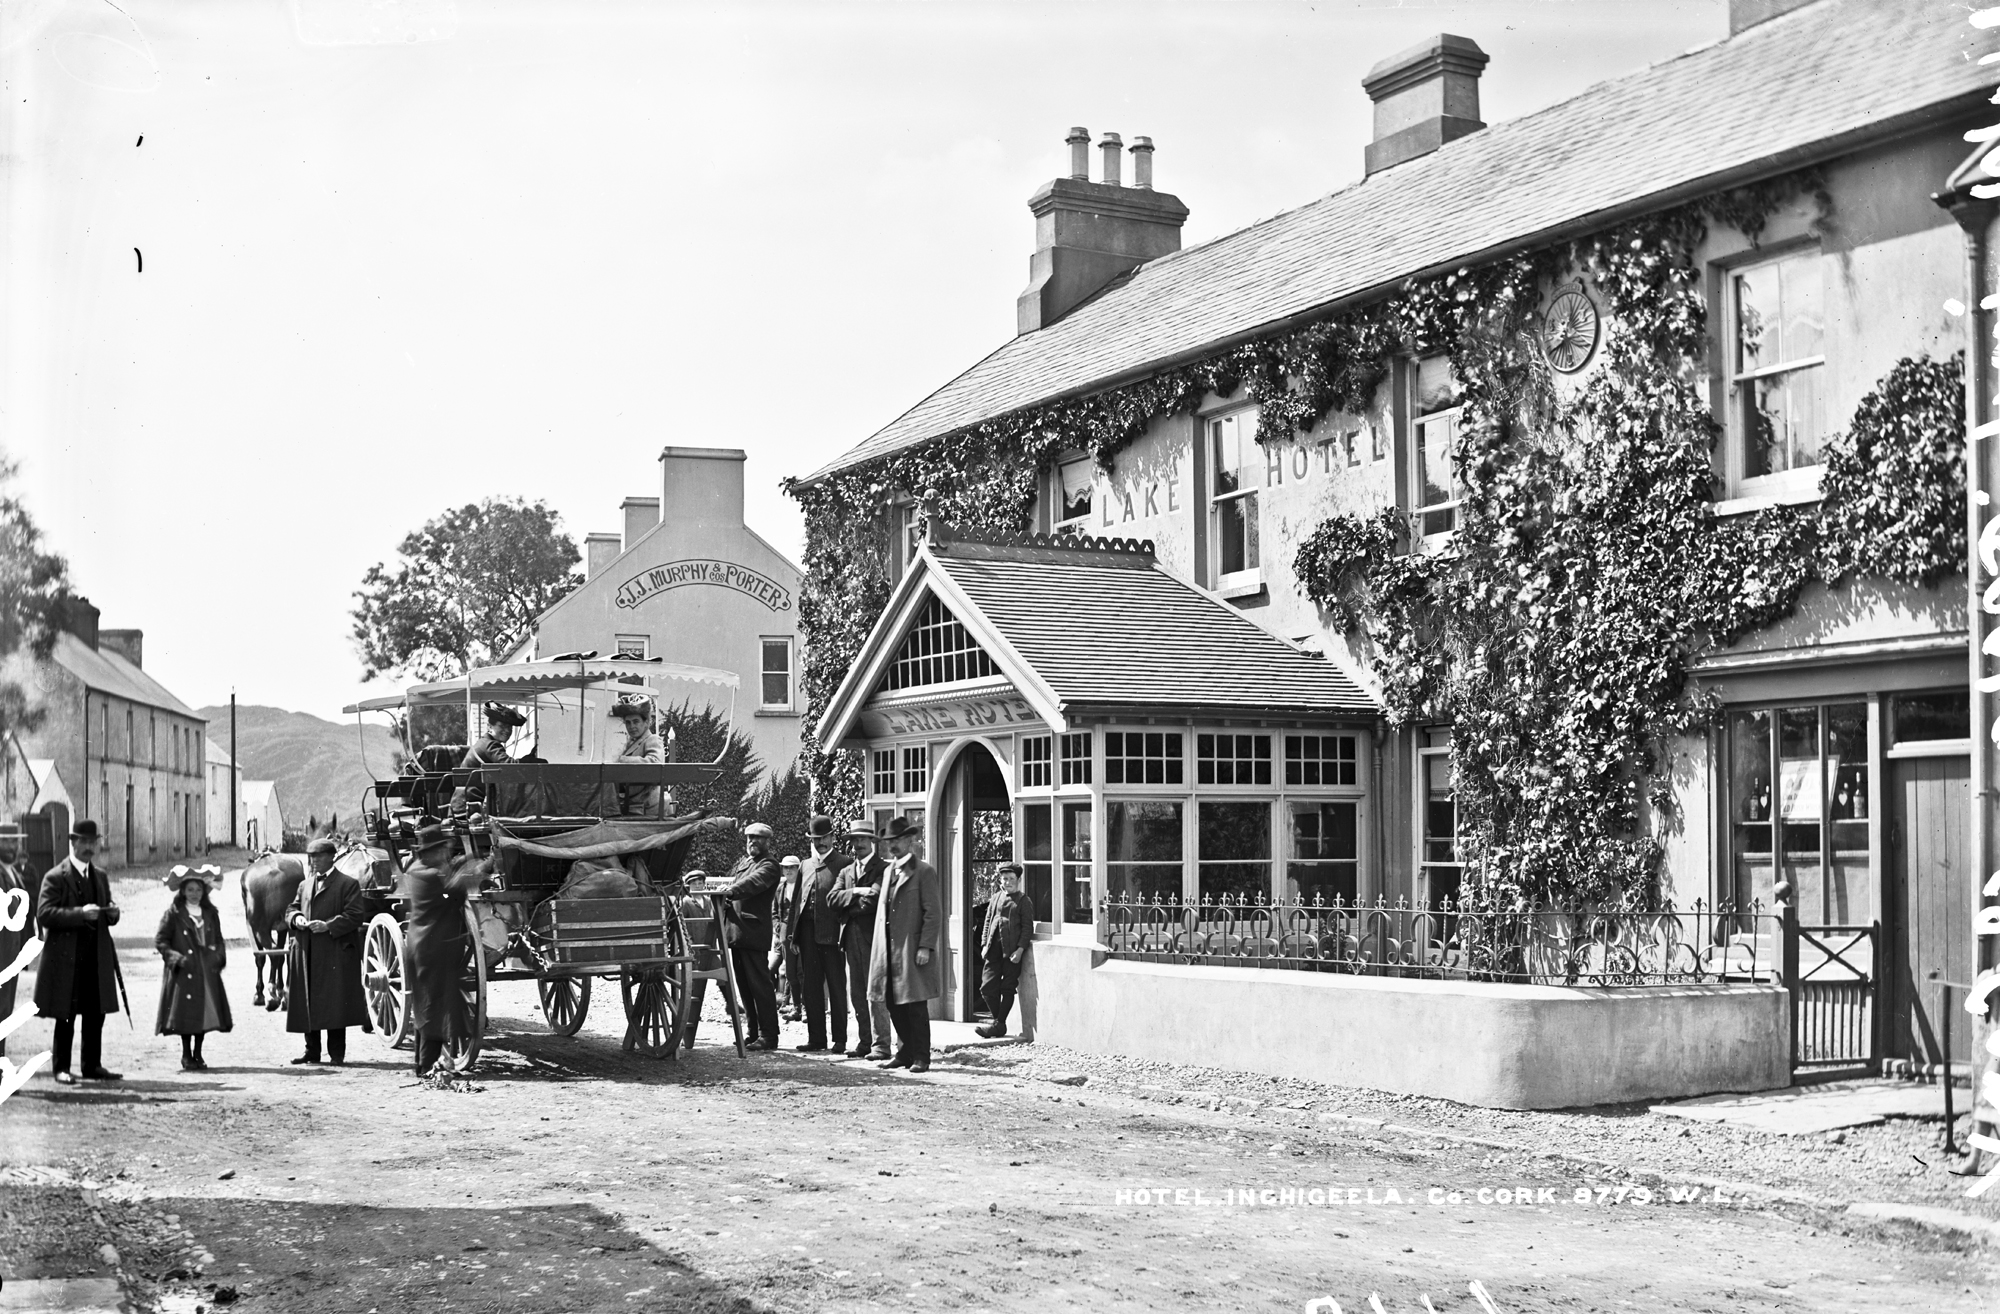 Charabanc at the Lake Hotel